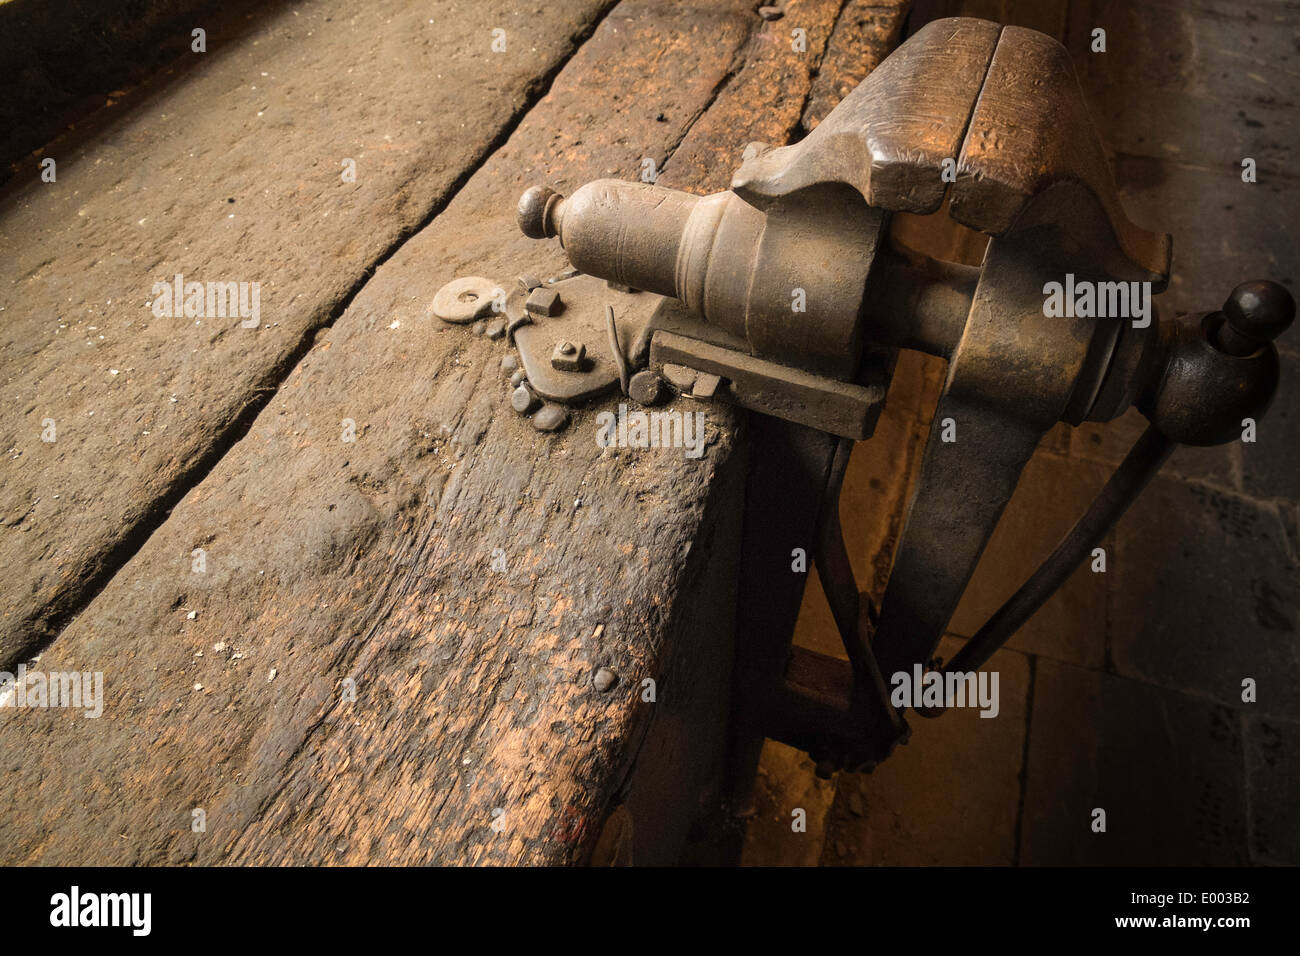 Vice fitted on old wooden bench, National Slate Museum, Llanberis, North Wales, UK - Stock Image